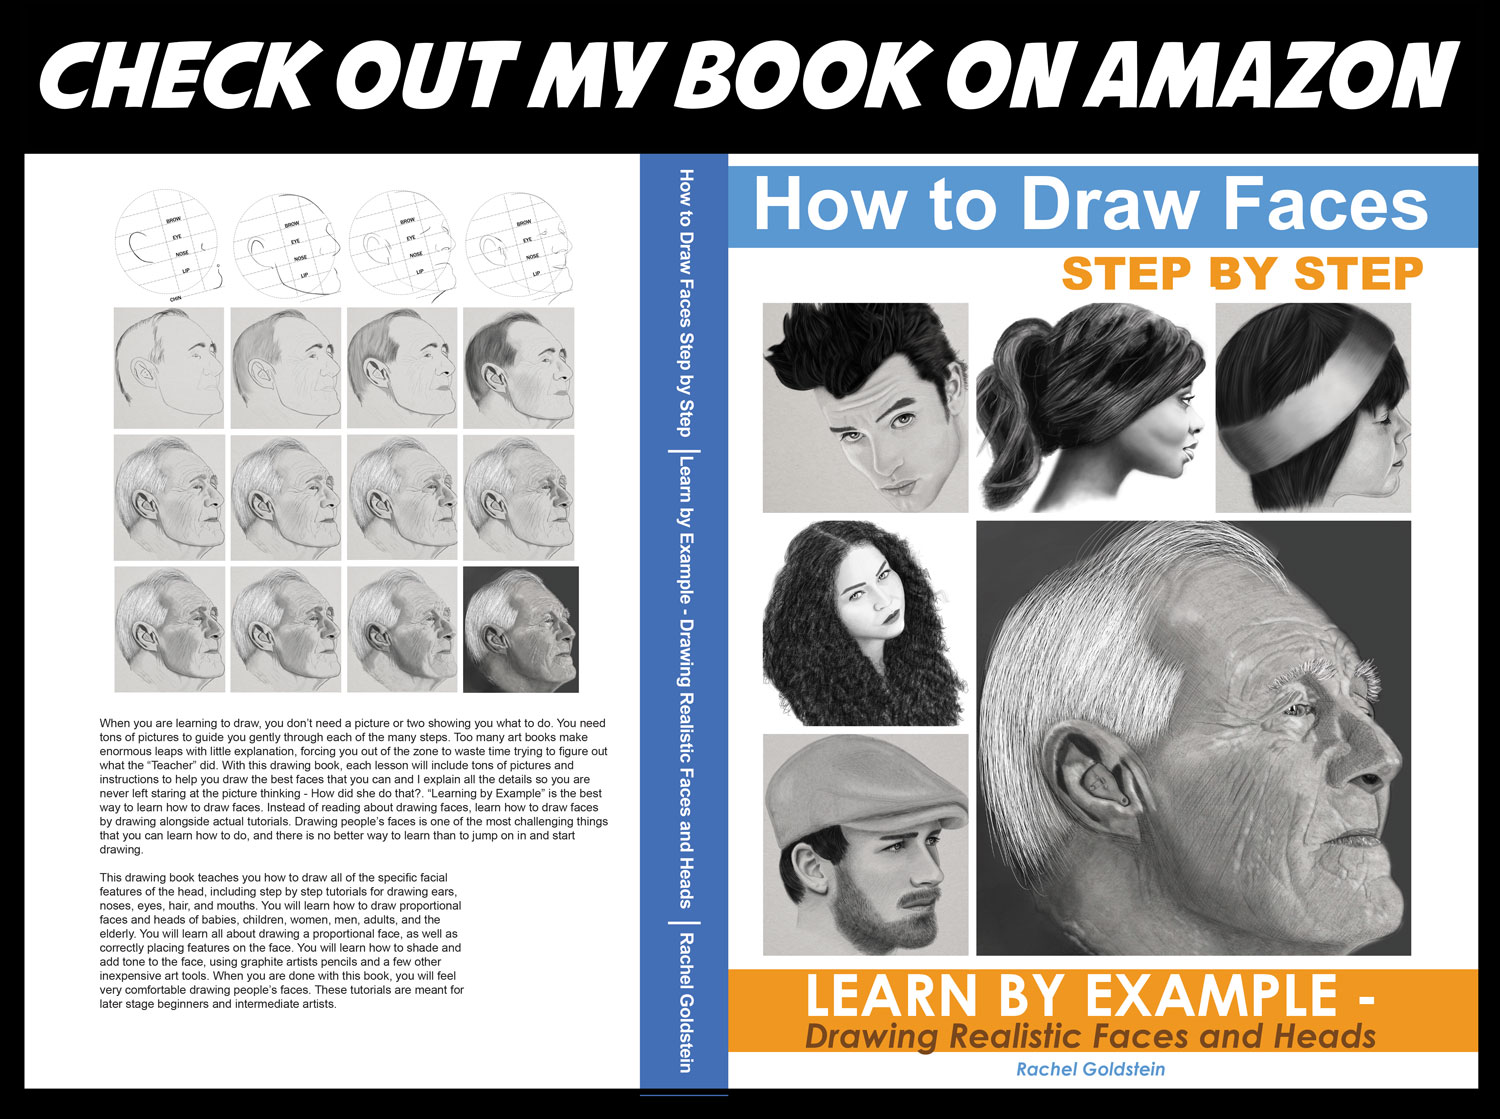 how to draw faces step by step - learn how to draw faces and heads